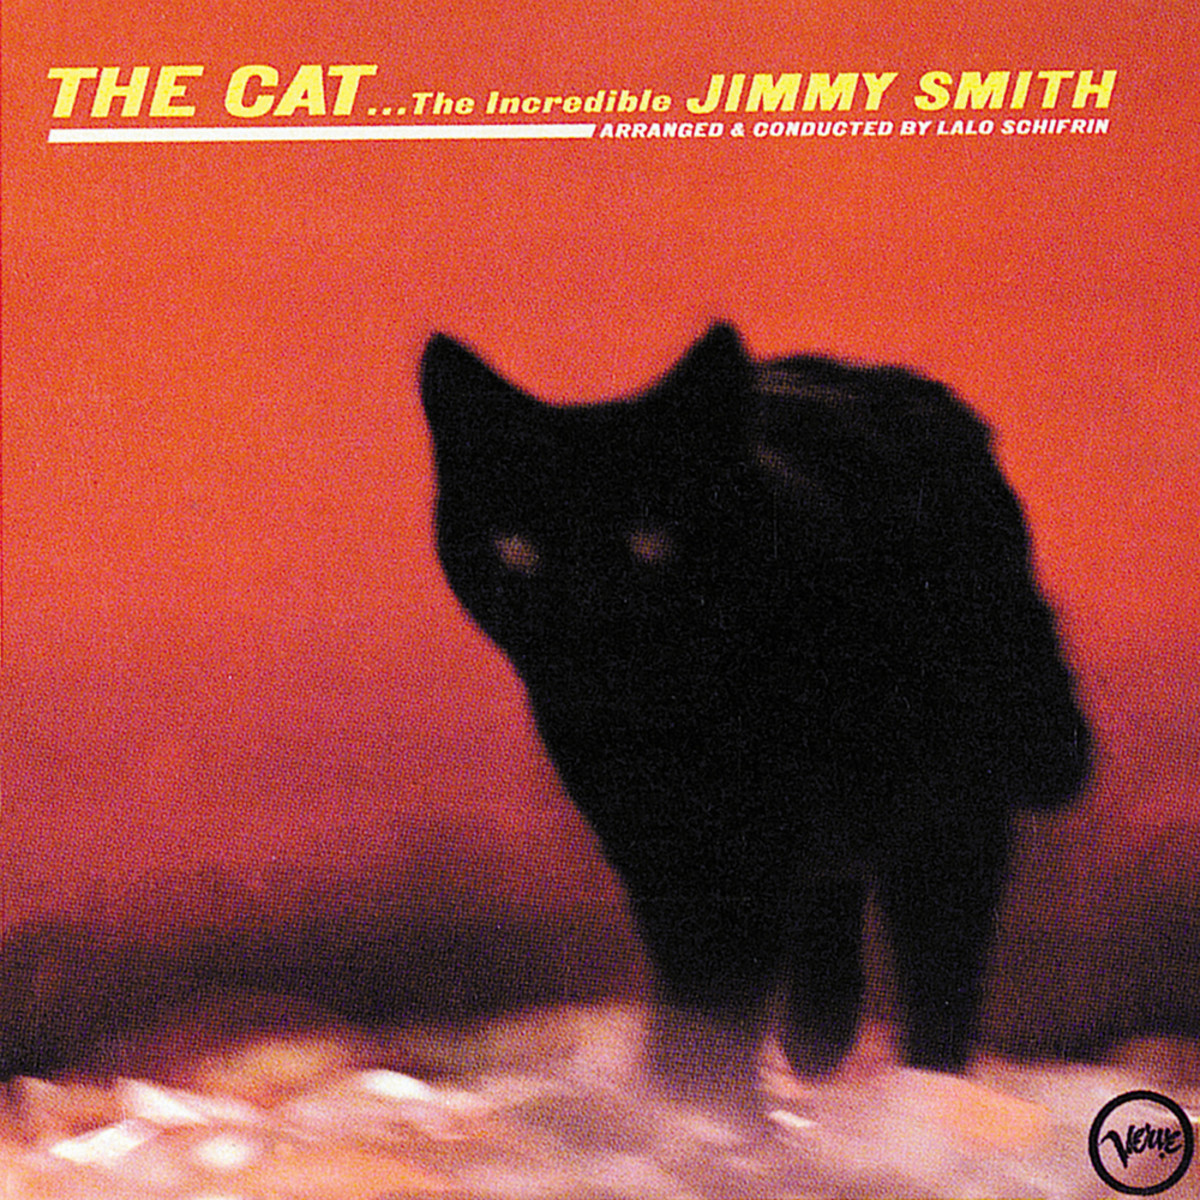 Jimmy Smith and Lalo Schifrin, The Cat